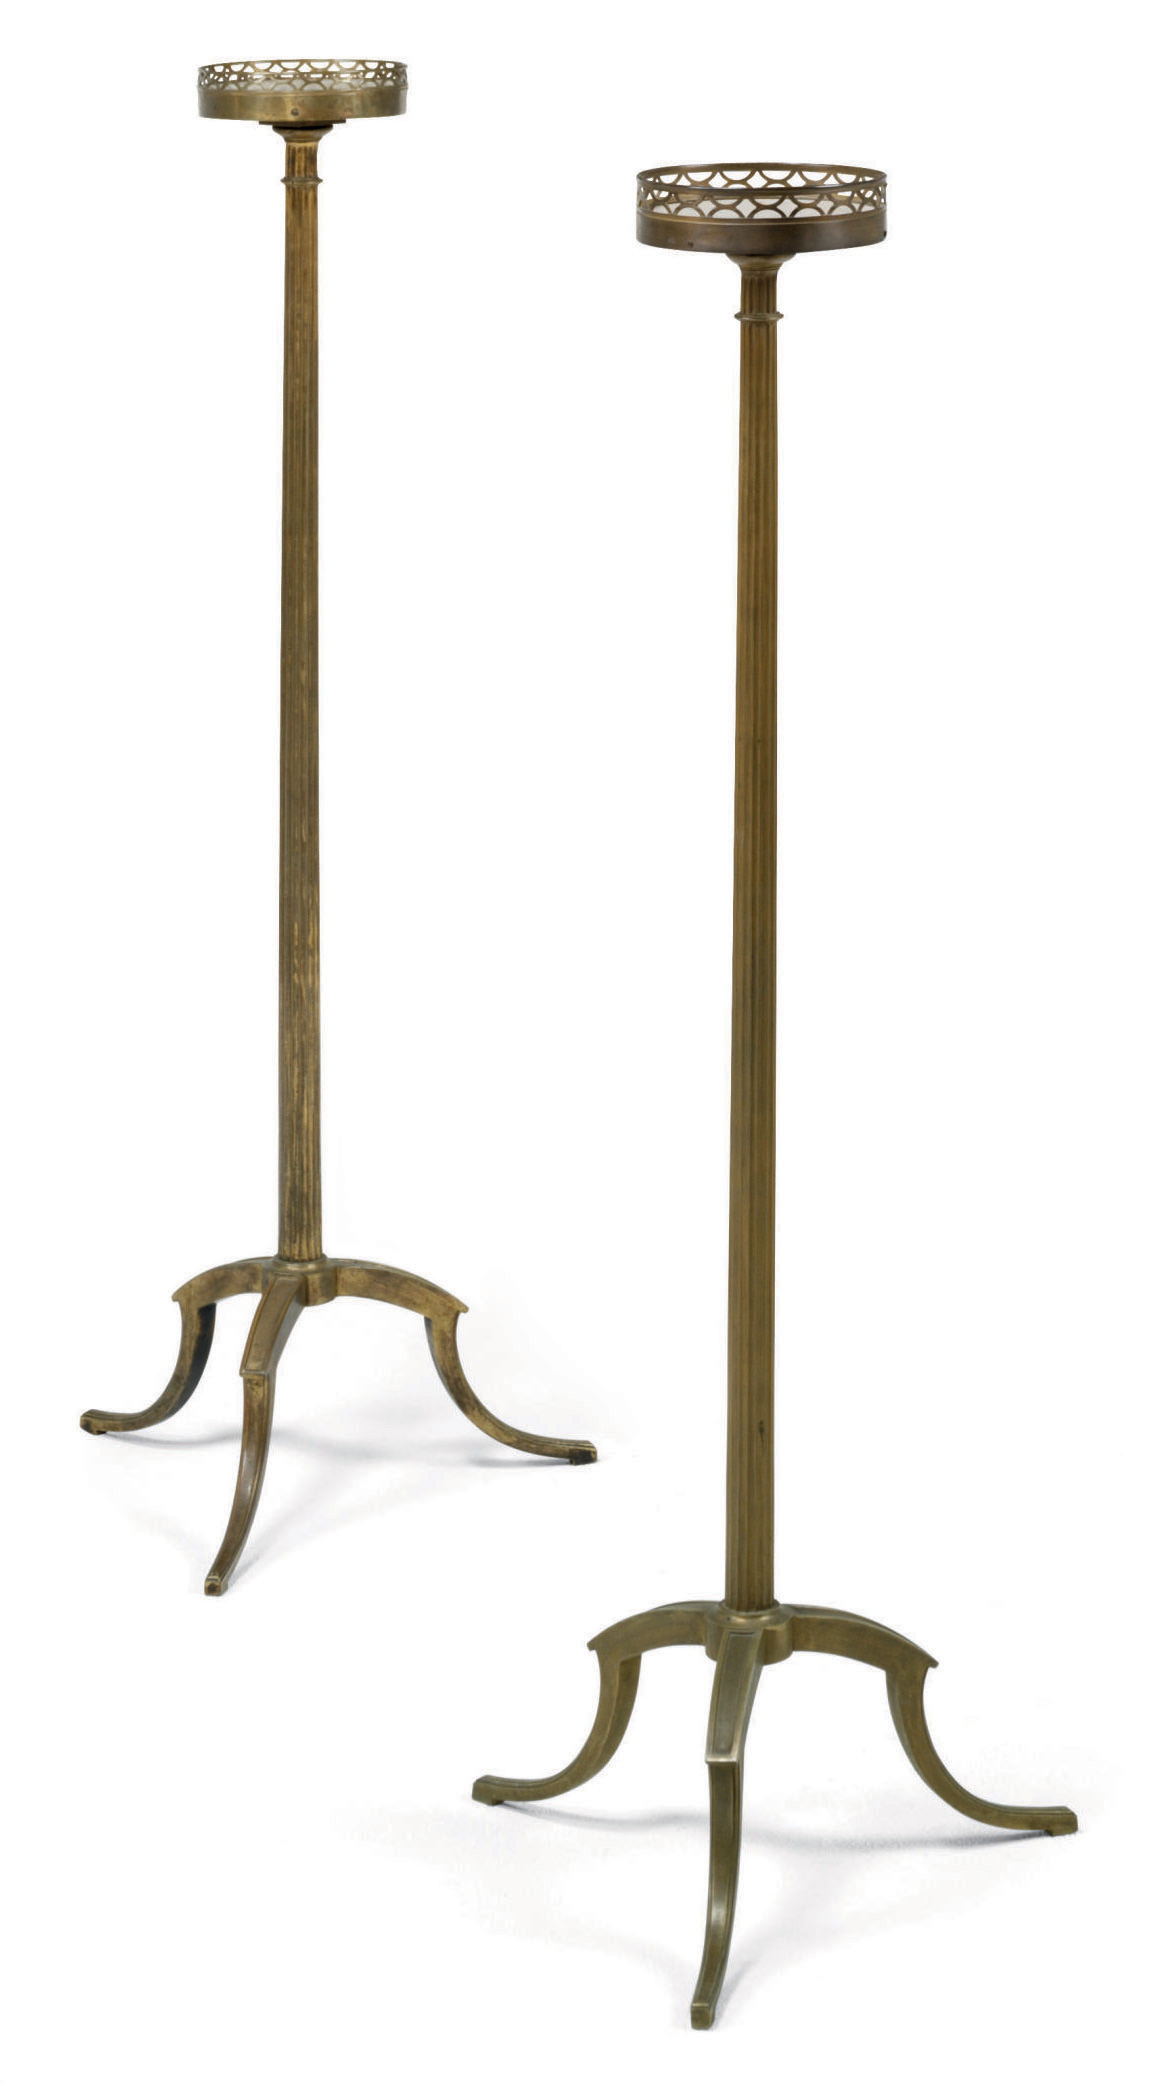 A PAIR OF FRENCH GILT-BRONZE TORCHERES